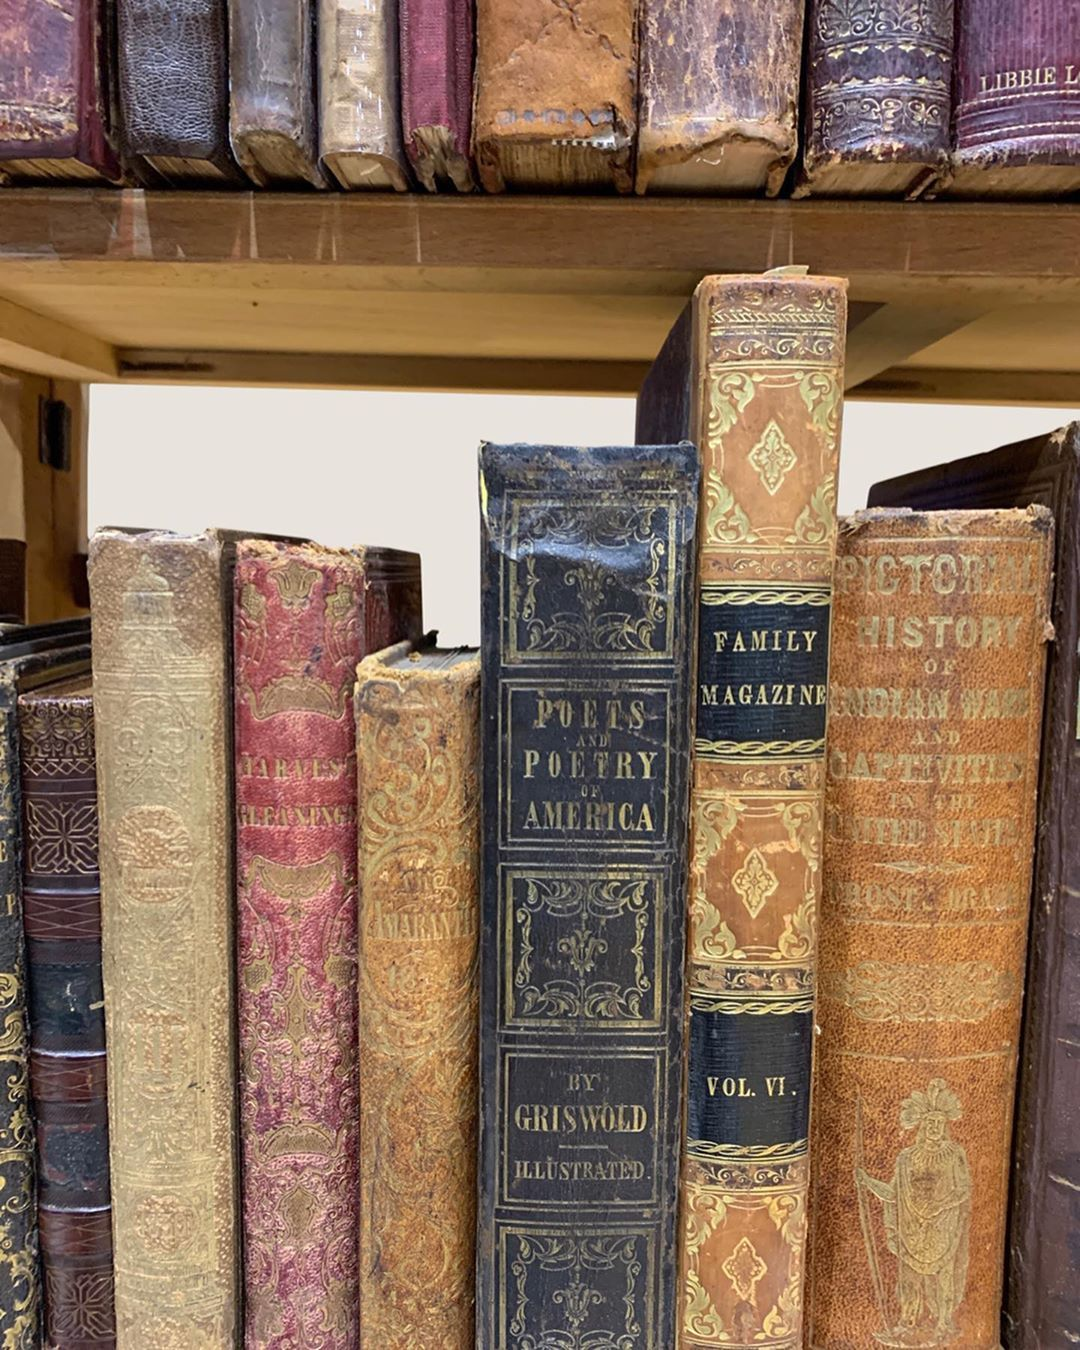 Pattie Vintage Book Boutique On Instagram A Few More Photos From The Rochester Antiquarian Fair This Past Weekend Hope You Al Libri Antichi Vintage Lettura